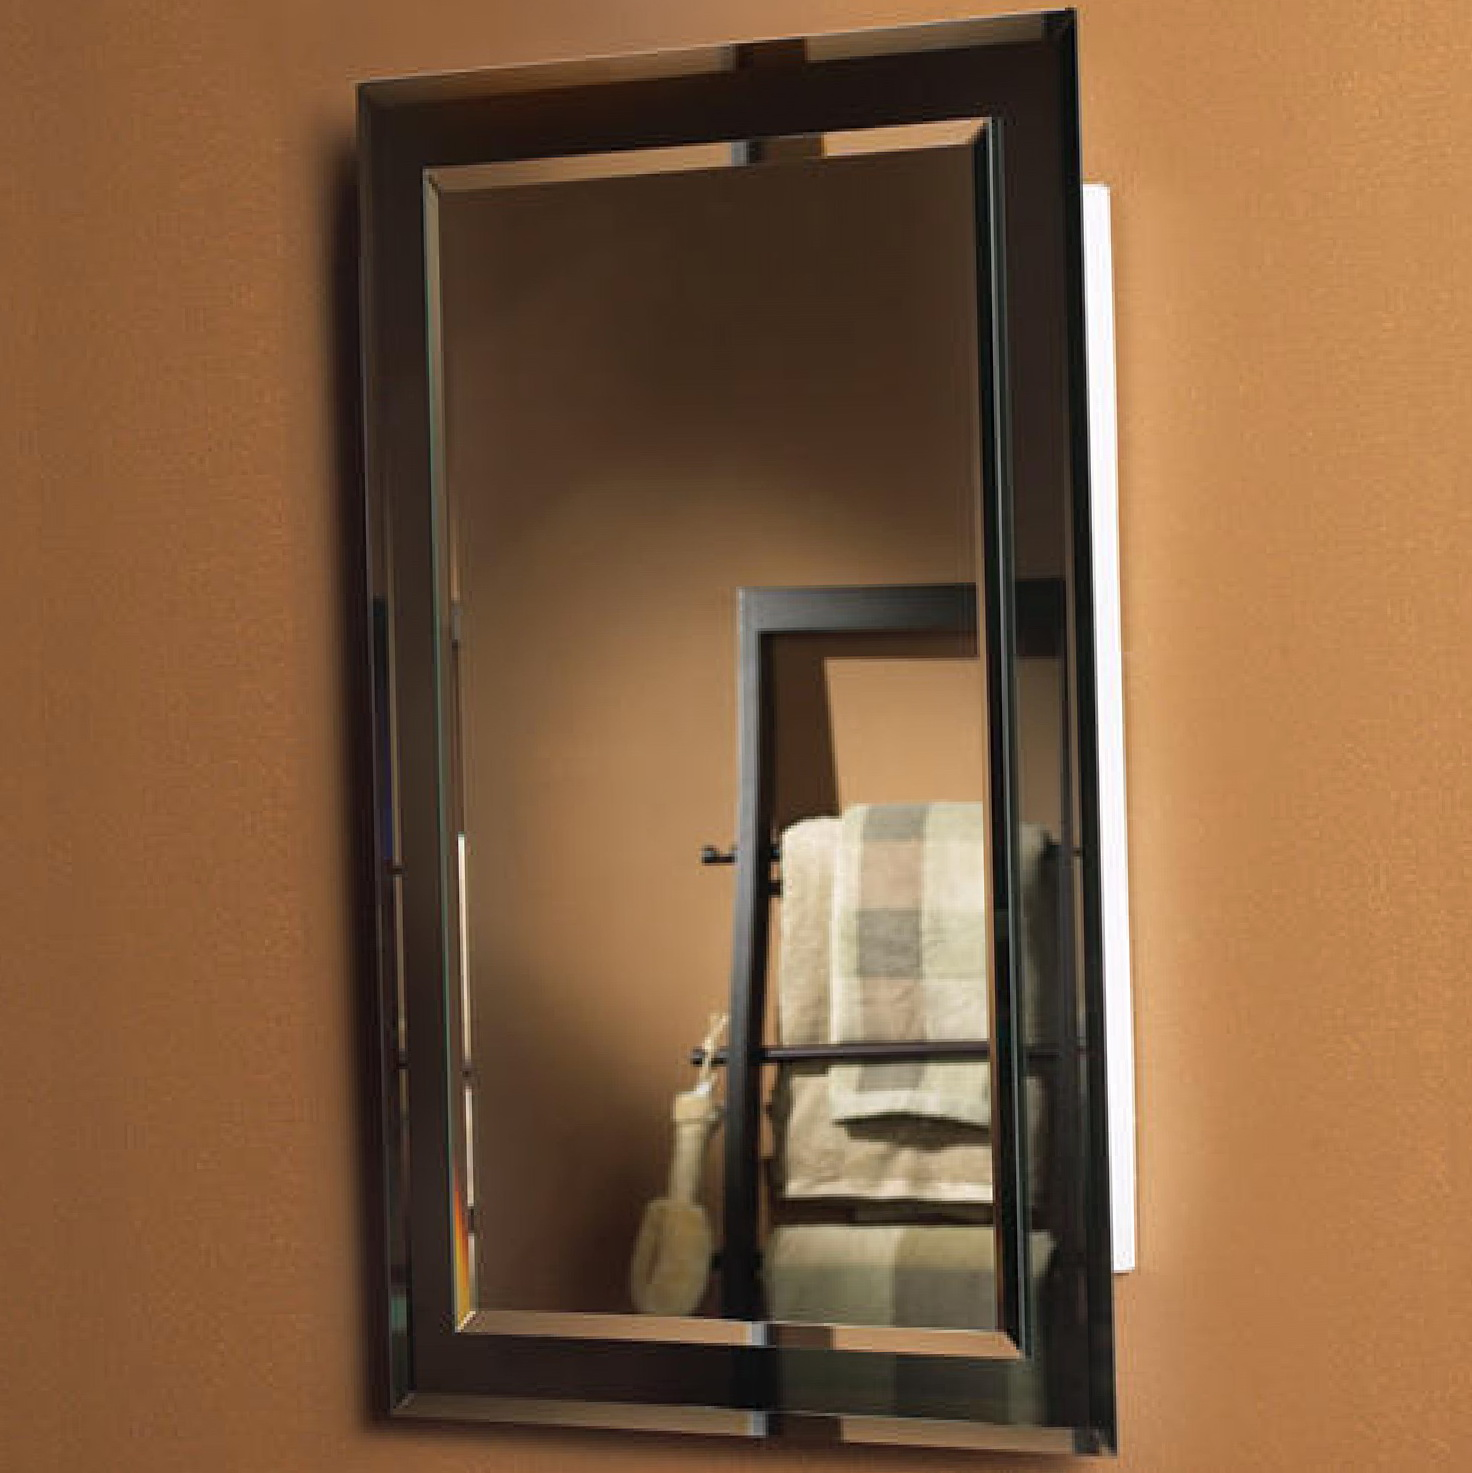 Recessed Wood Medicine Cabinet No Mirror Home Design Ideas